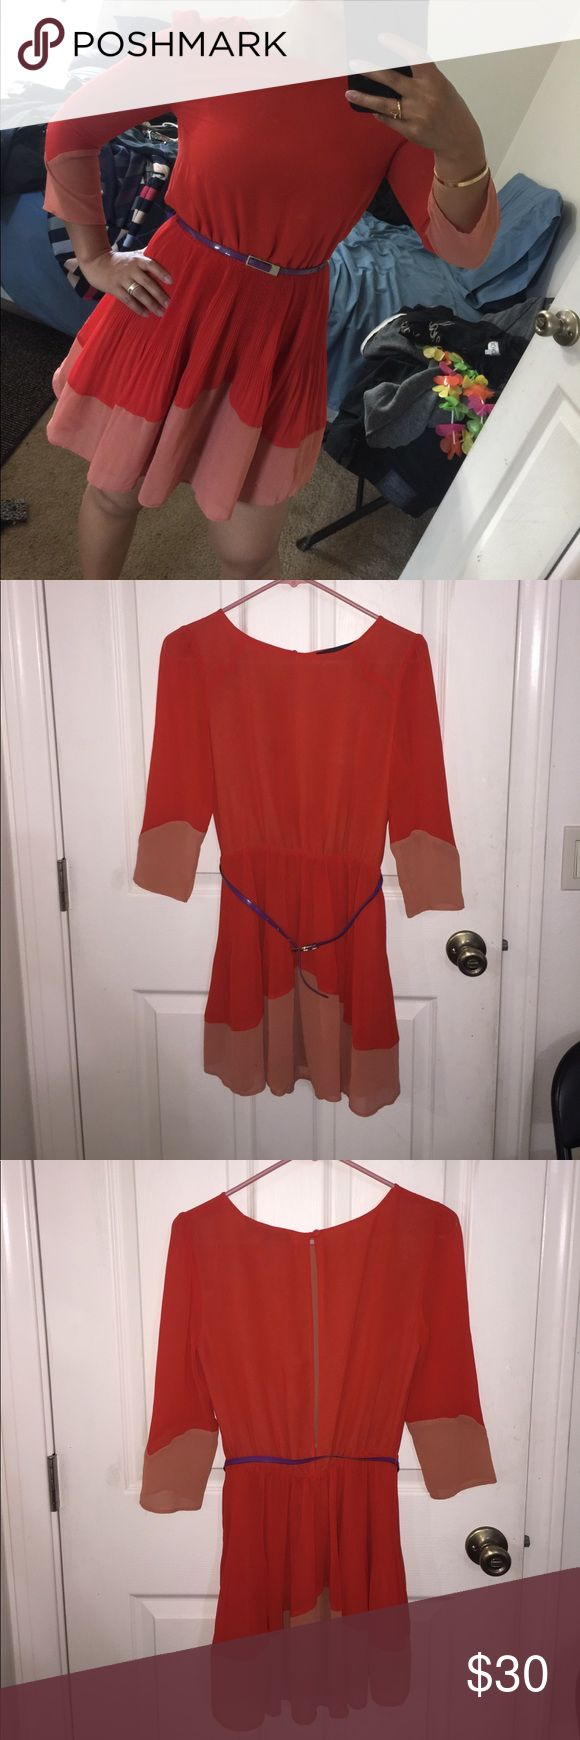 Worn Topshop Petite orange dress with belt Worn Topshop Petite orange dress with purple belt. The belt is a little beat up but you can wear it without a belt or with your own belt. Feel free to make me an offer! Topshop PETITE Dresses Mini